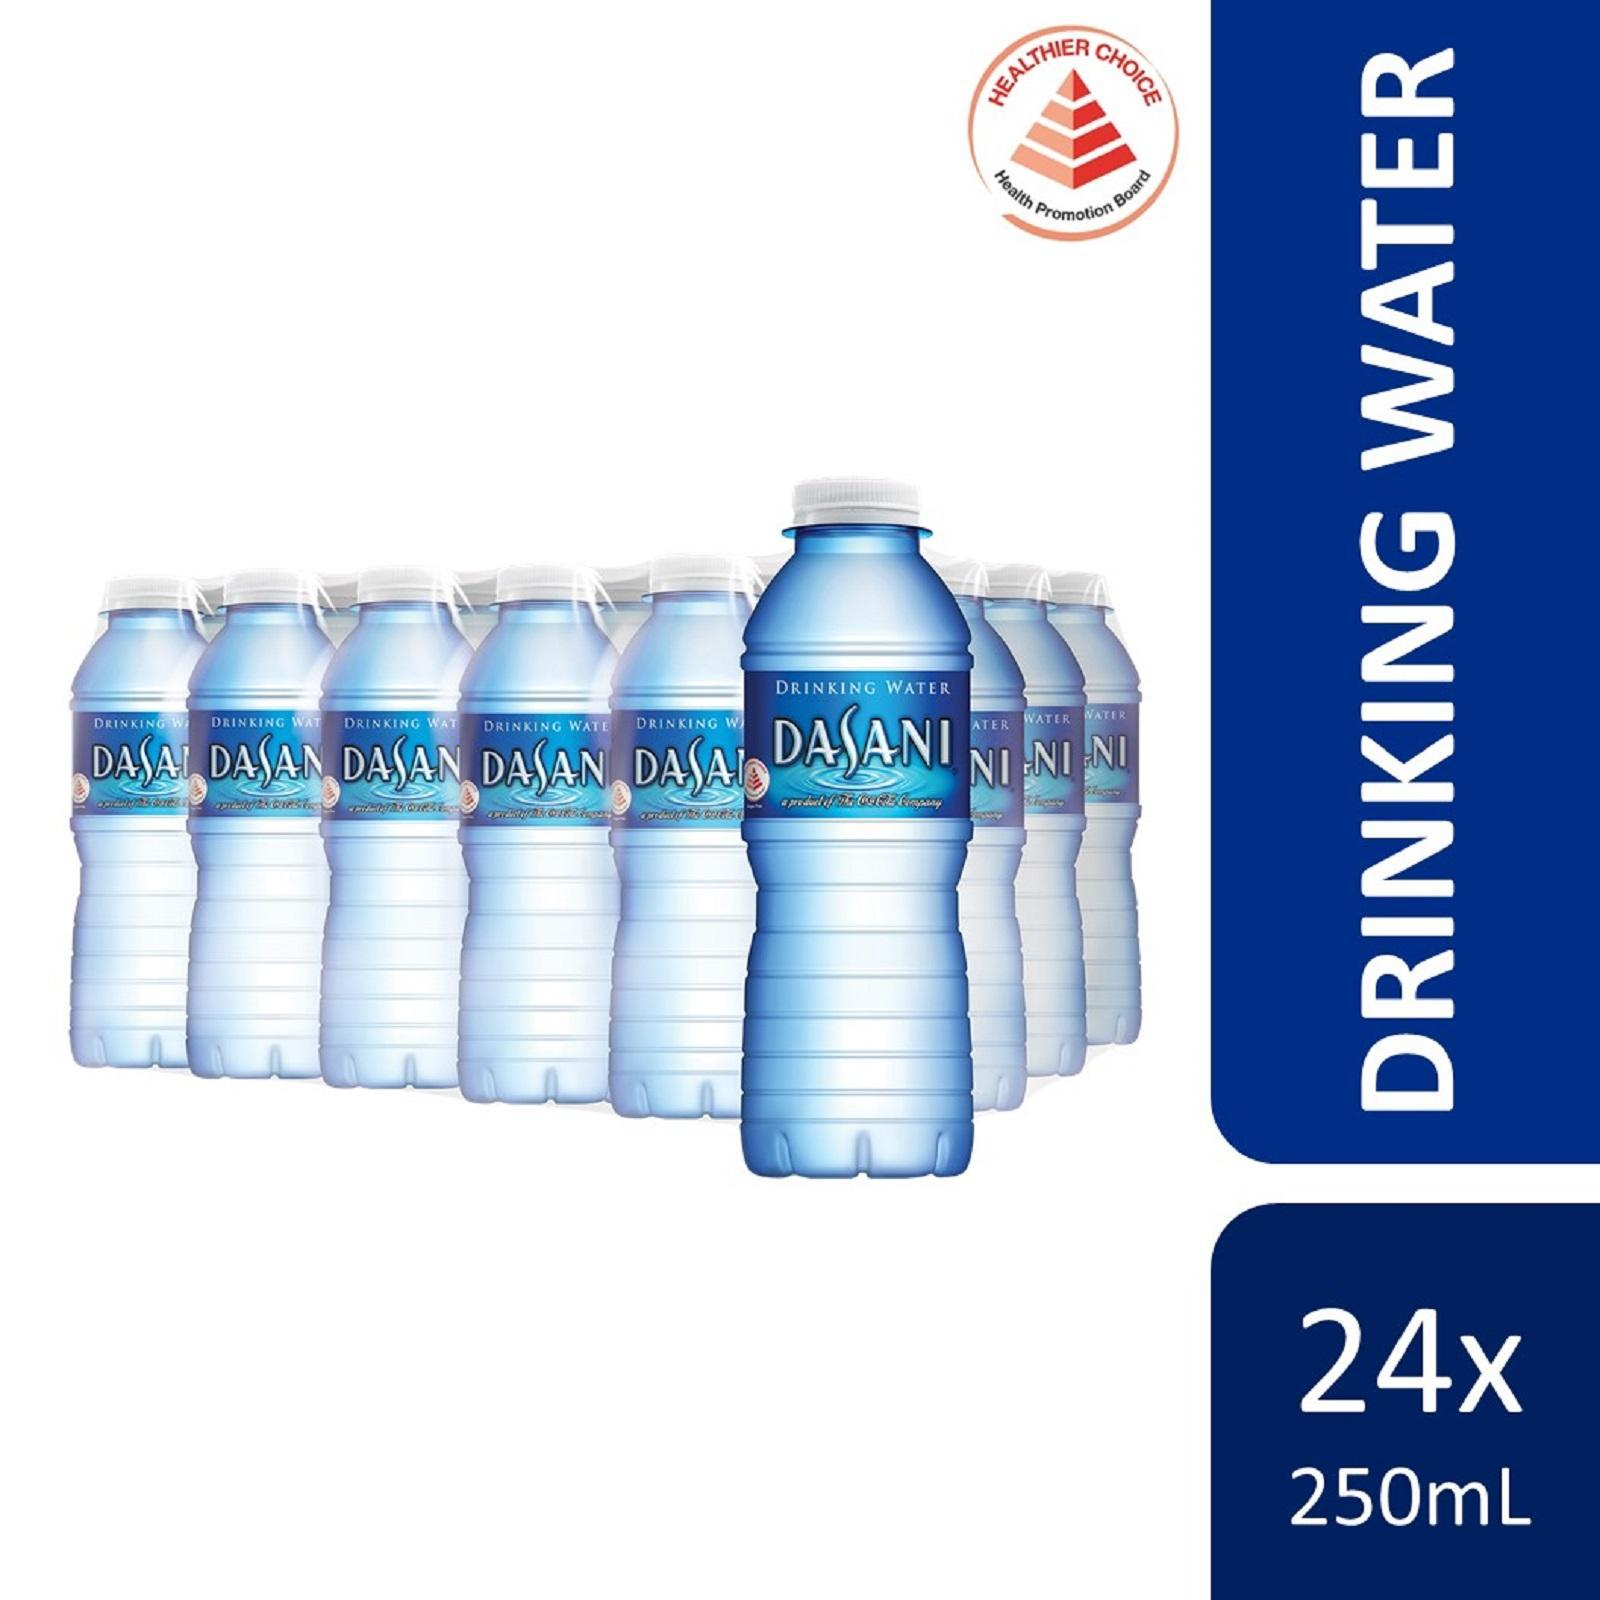 Dasani Drinking Water (24 x 250ml) - Case